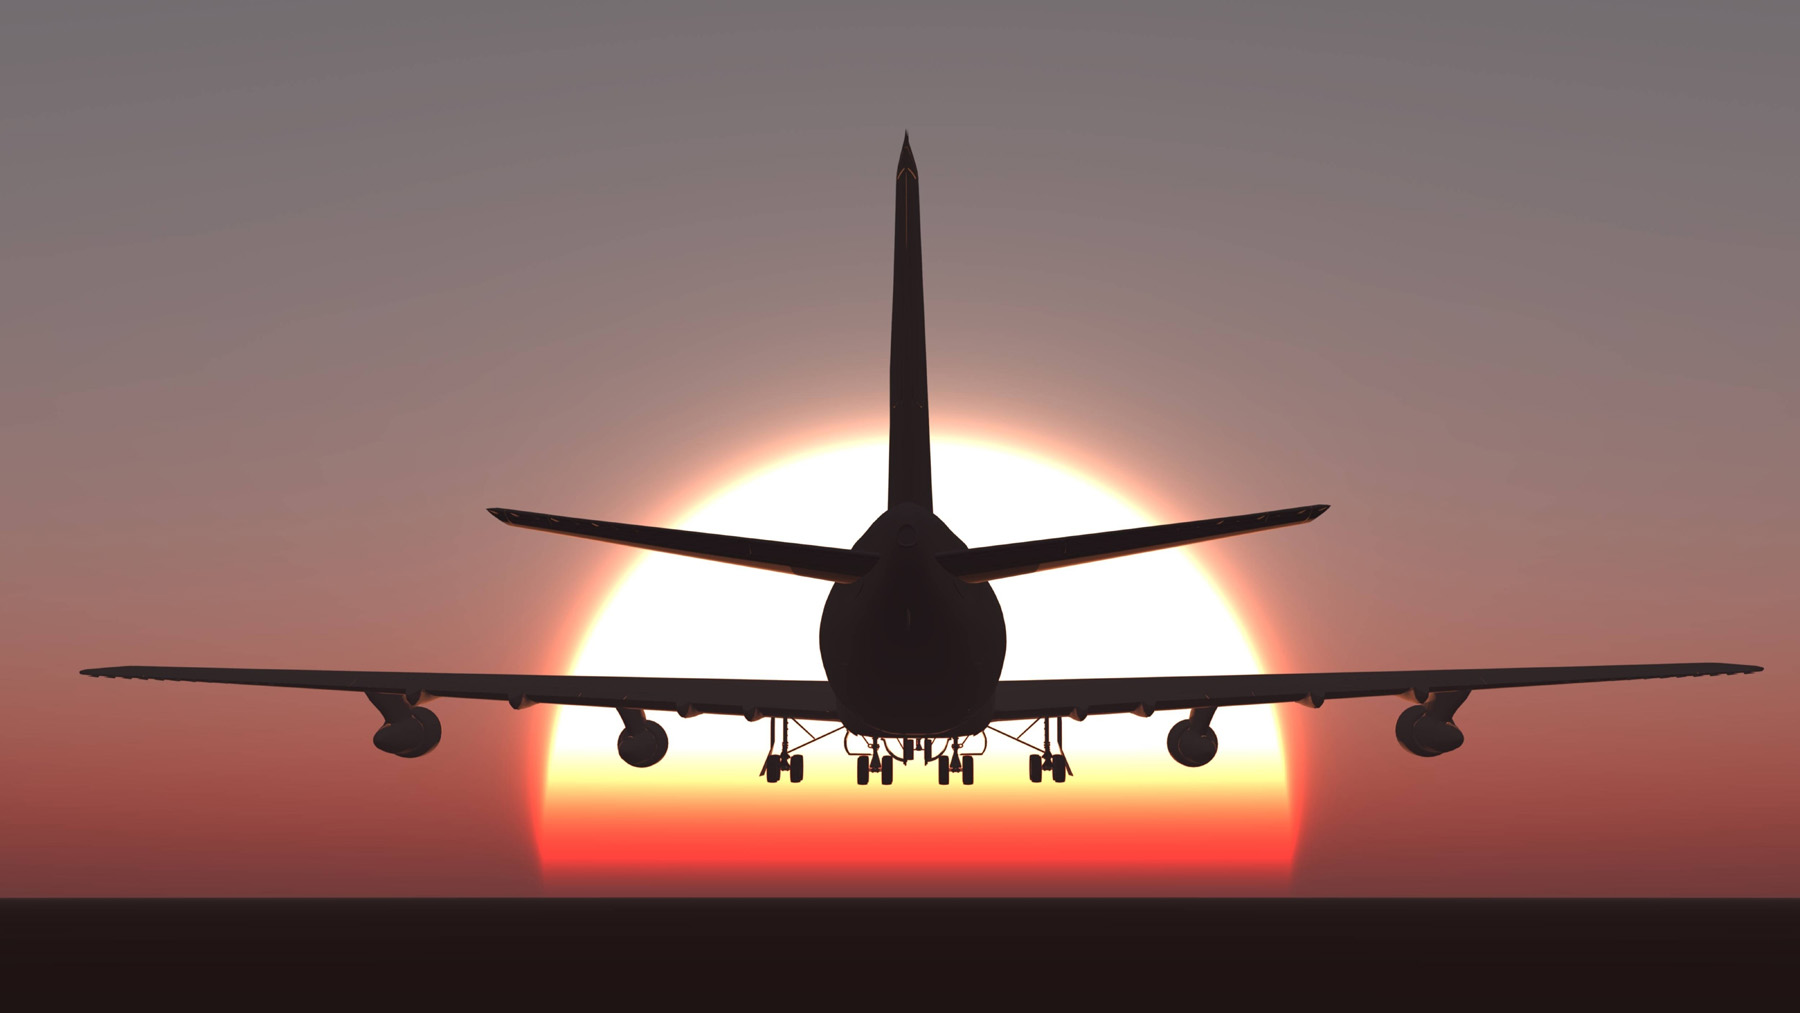 Evening sunset airplane silhouette 52003